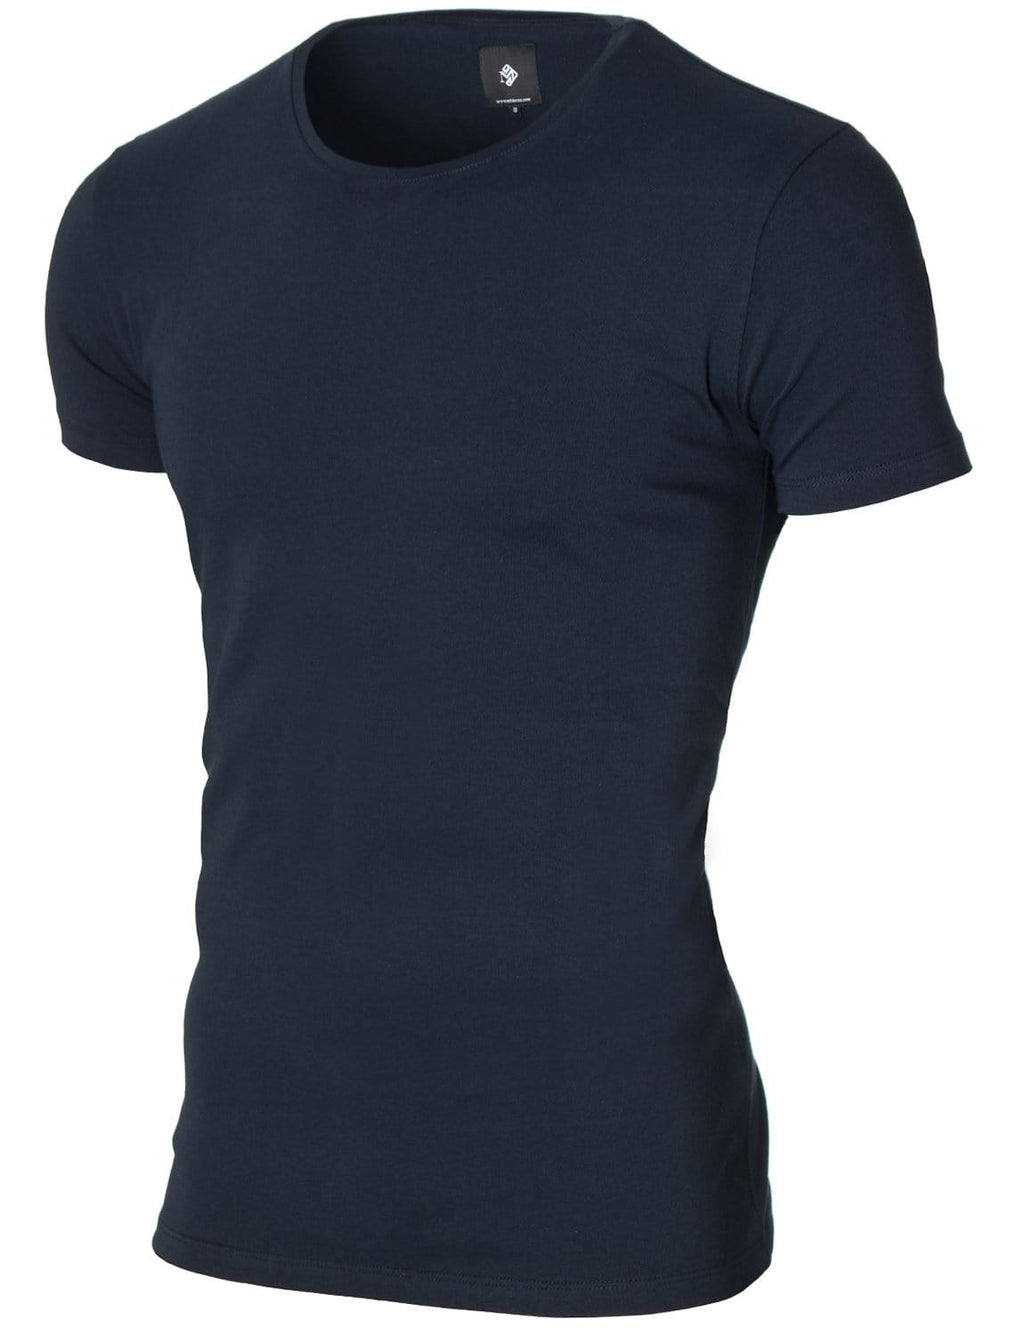 Mens basic crew neck t-shirt navy (MOD1001RN)